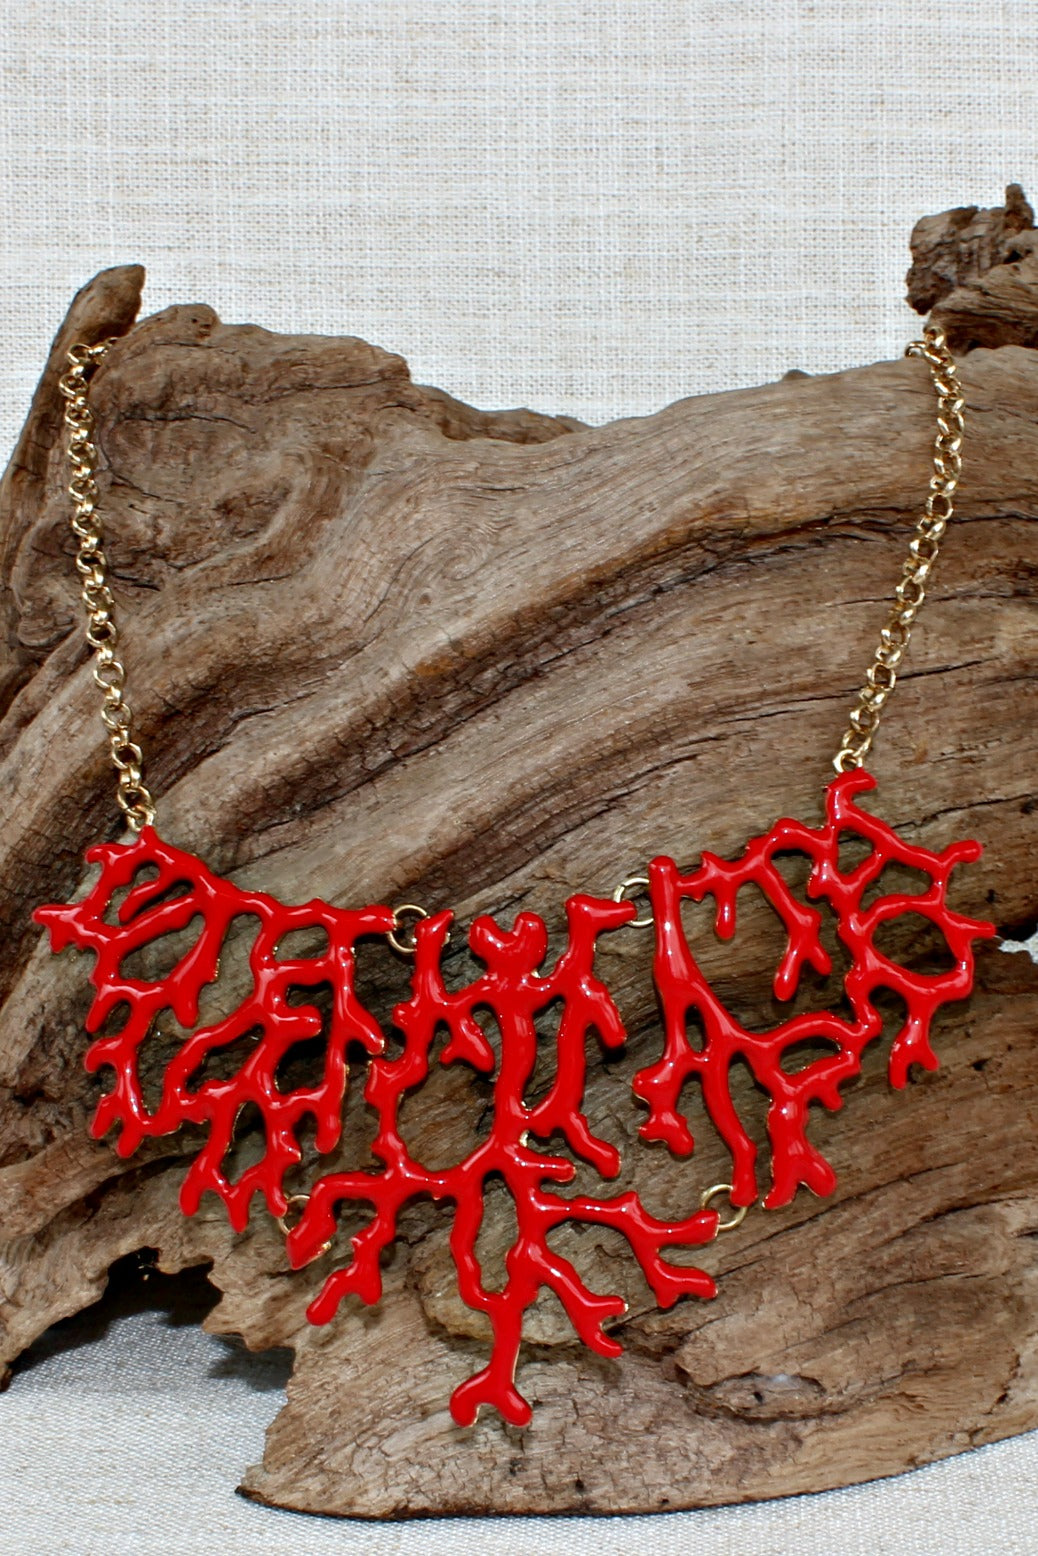 Coral Reef Necklace, Red